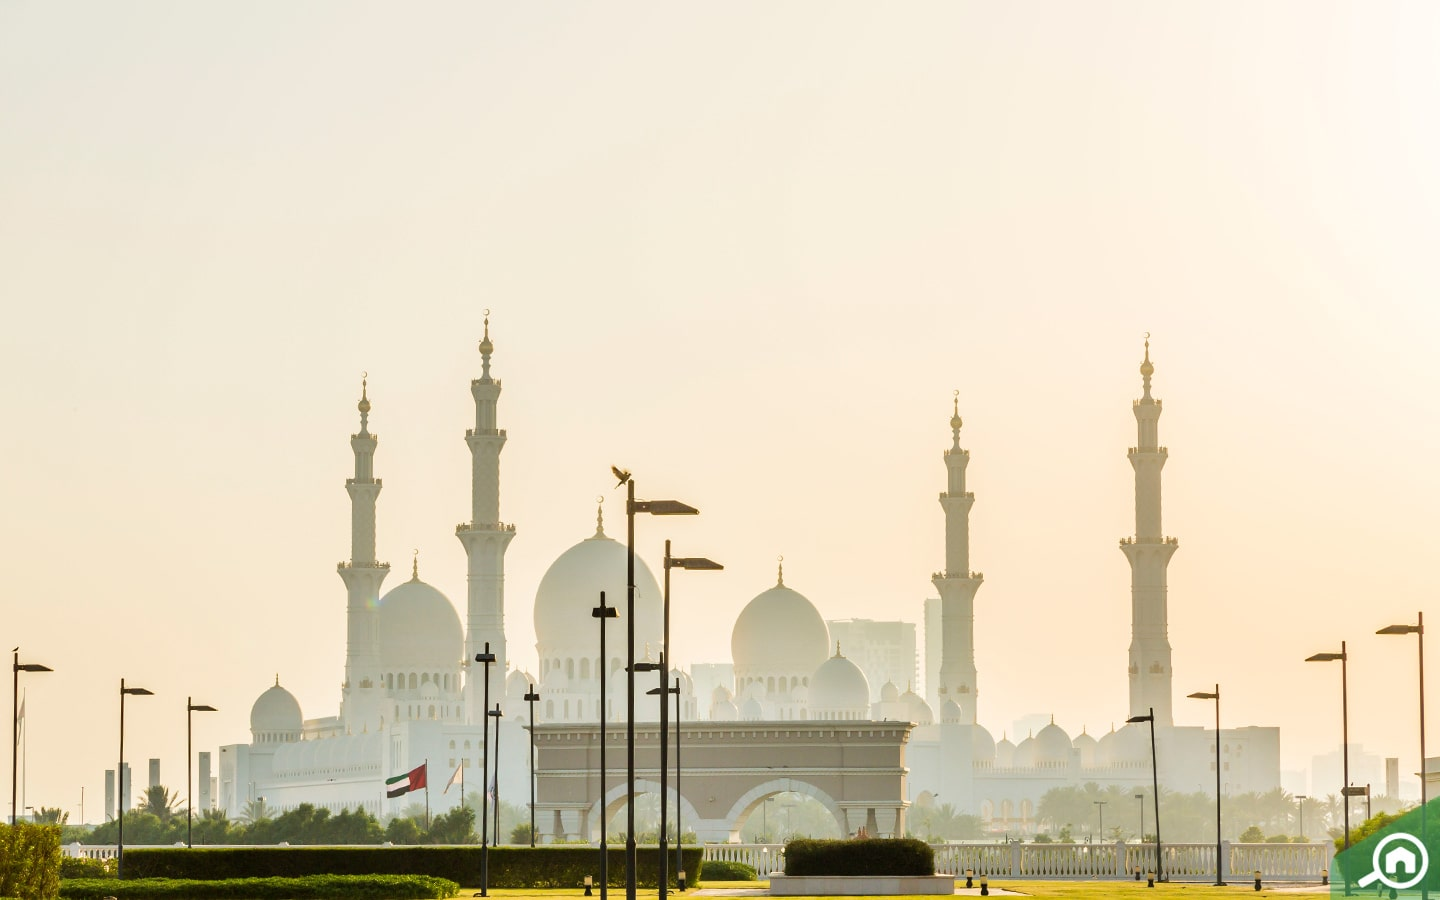 View of Sheikh Zayed Mosque, one of the popular places to visit in Abu Dhabi